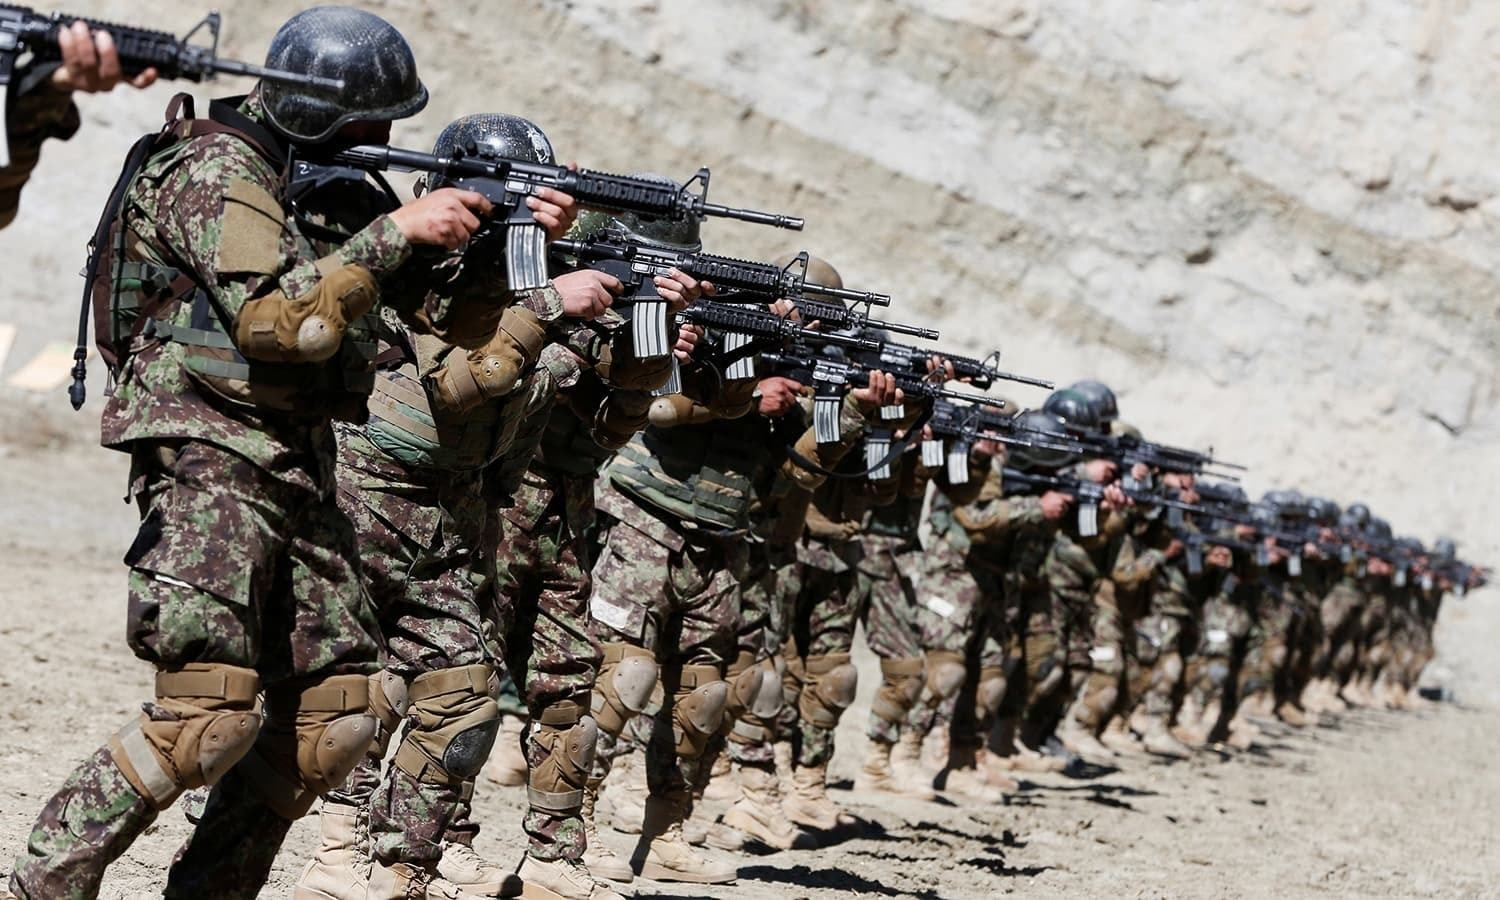 The report claimed that some bases had been completely handed over to Afghan security forces and others were vacated. — Reuters/File